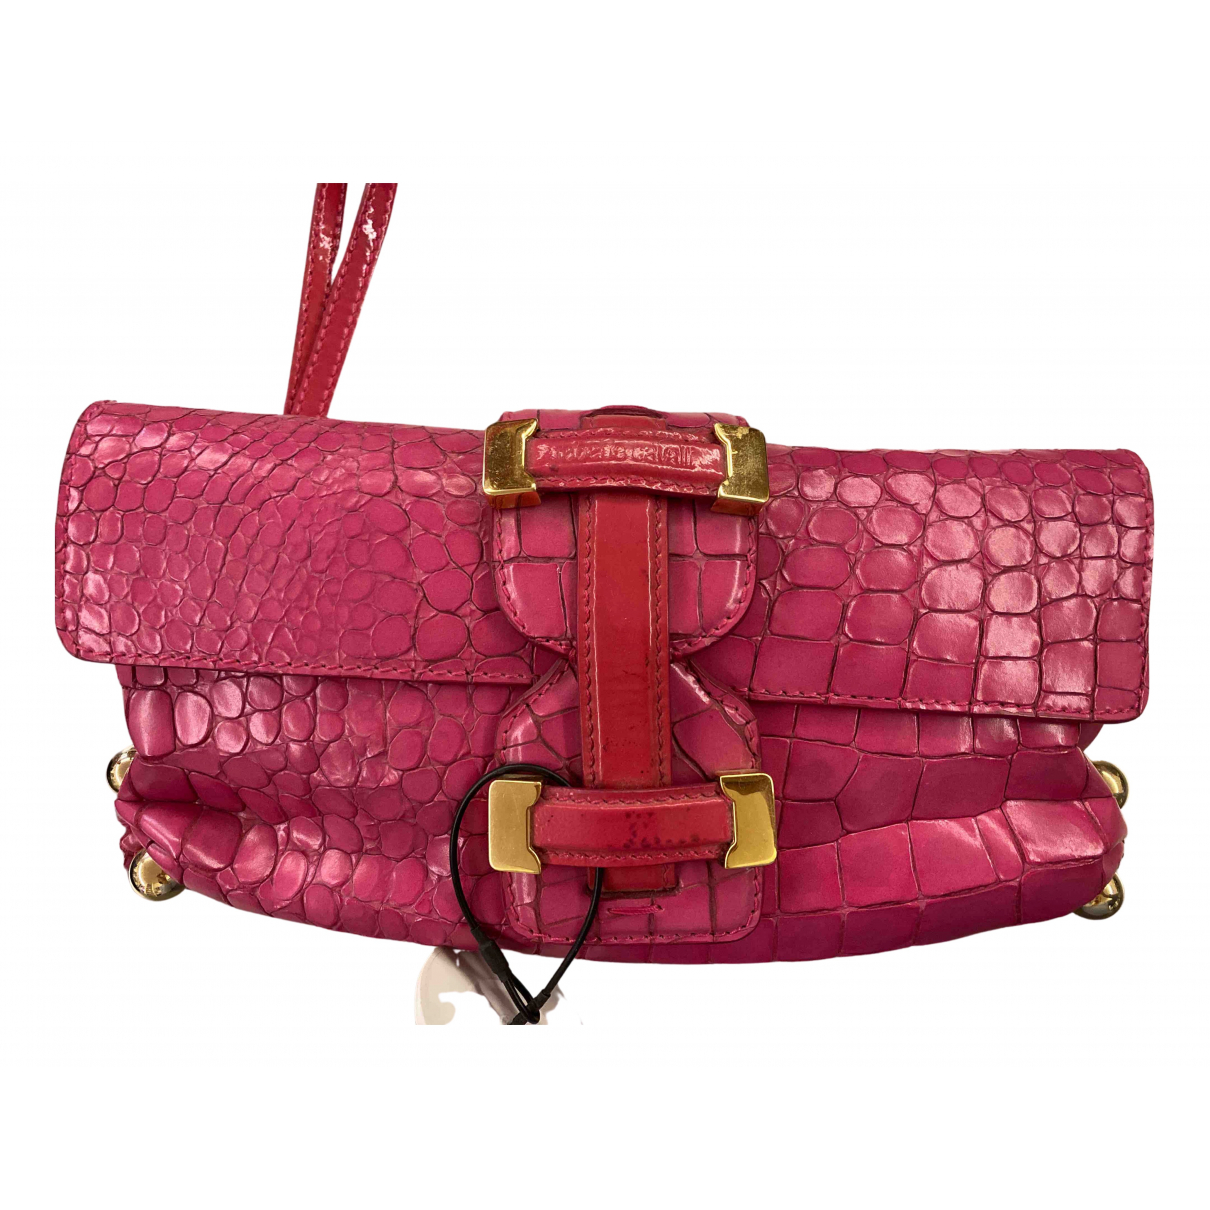 Roberto Cavalli N Pink Leather handbag for Women N